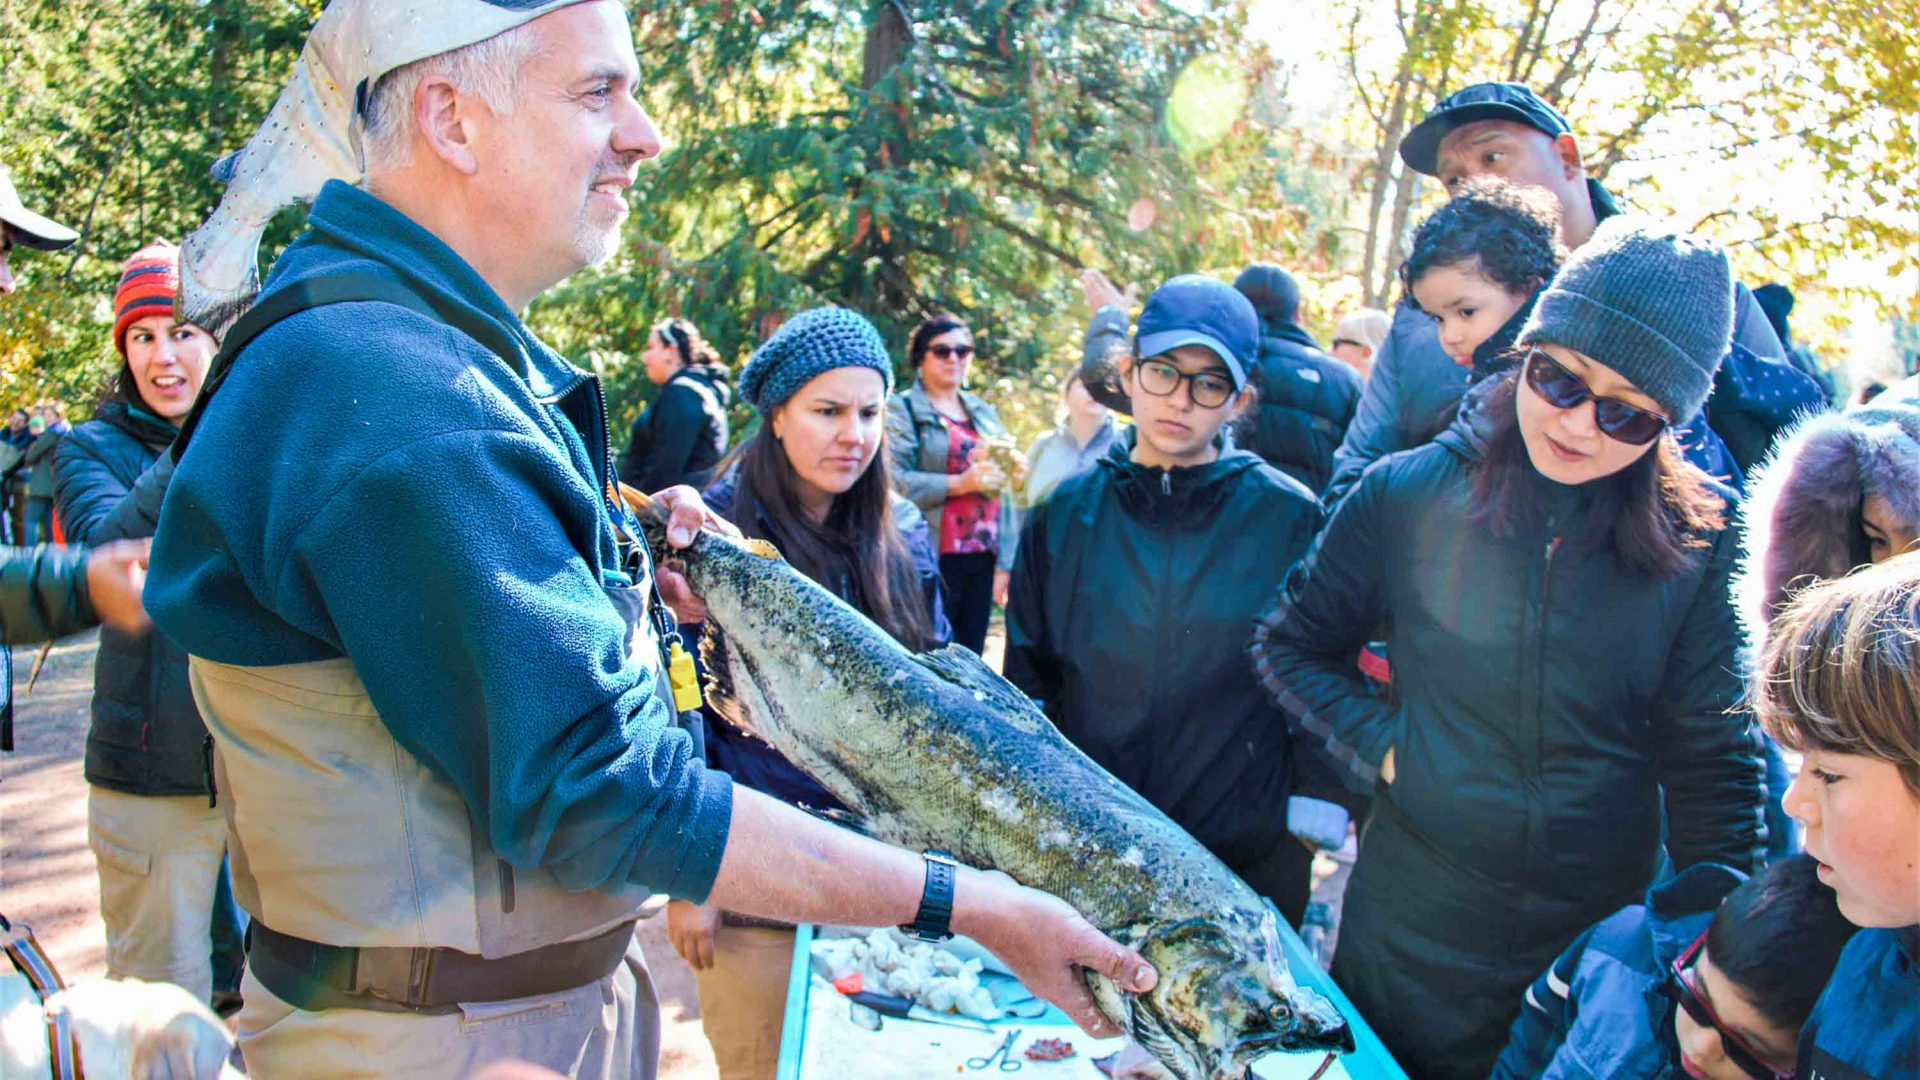 Guy Scharf, from Fisheries and Oceans Canada, captivates young children as he dissects two salmon.